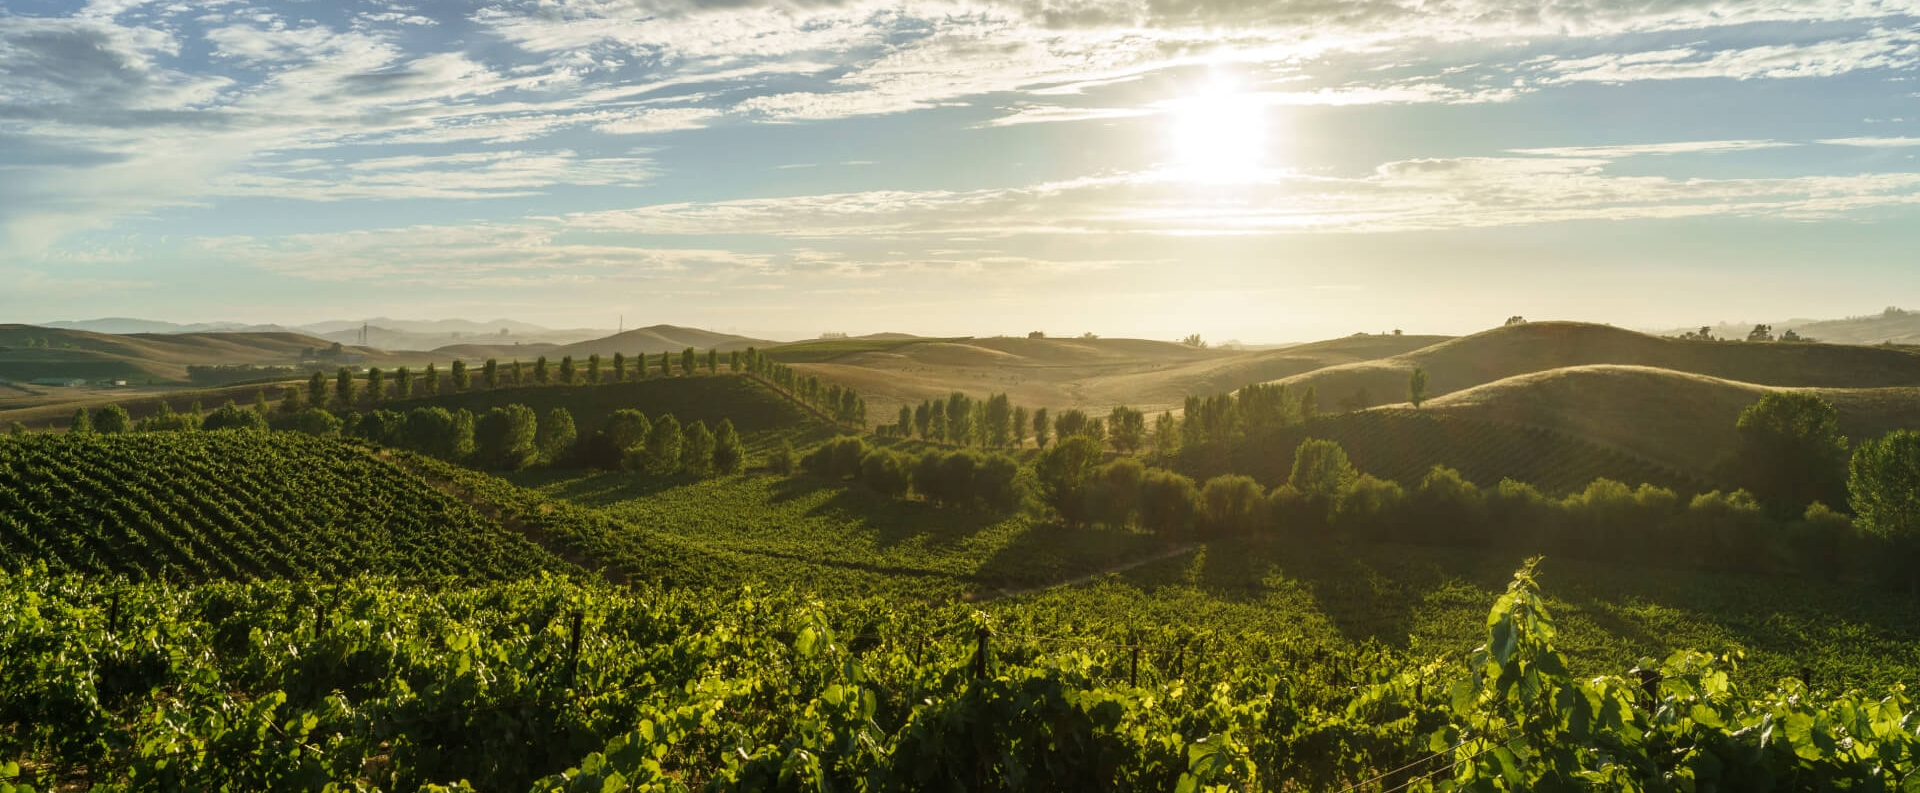 A view of green rolling hills and vineyards in Sonoma County, California.